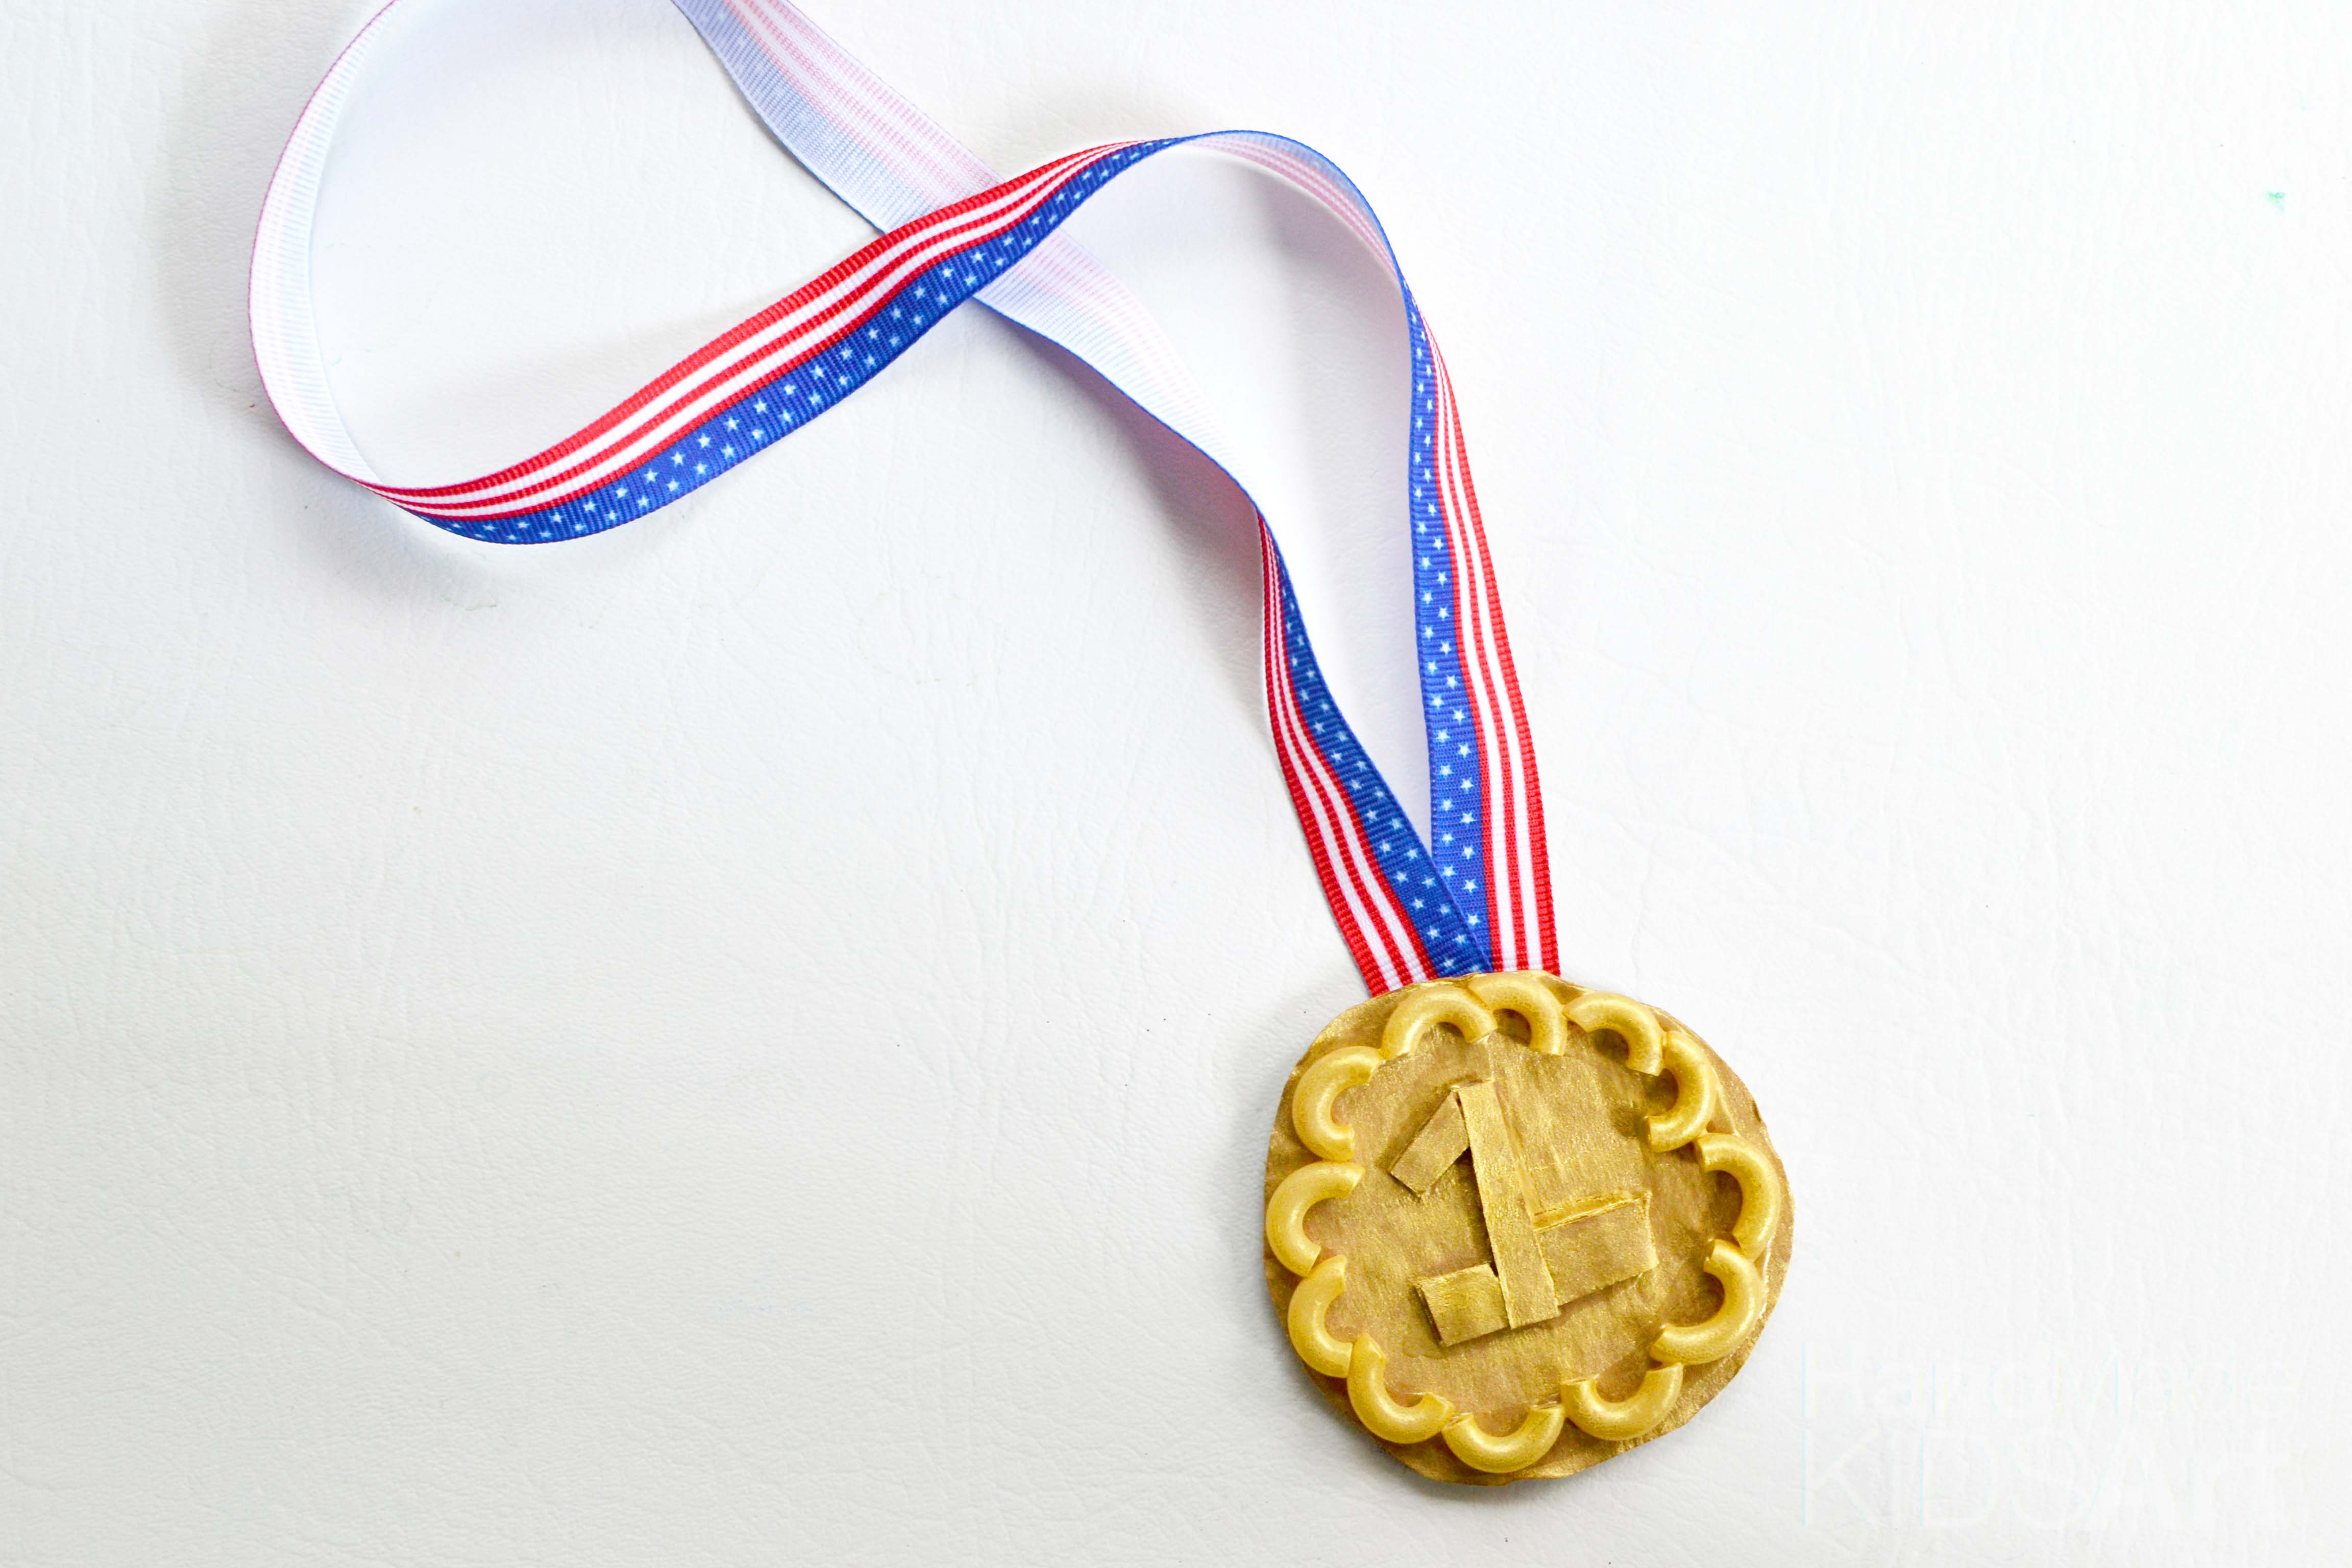 Day 5 Can You Design A New Gold Medal